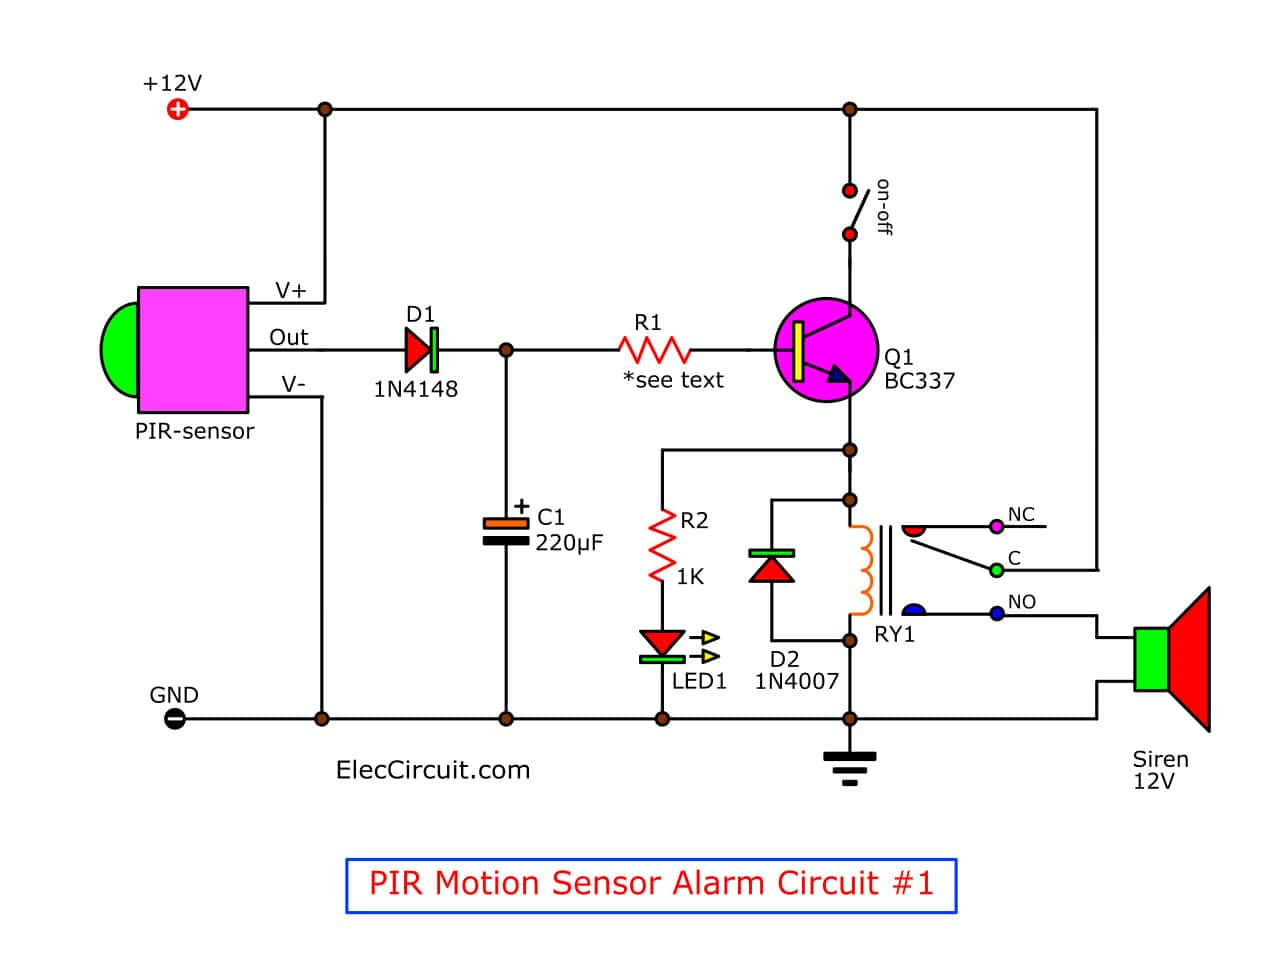 Swell Pir Motion Sensor Alarm Circuit Wiring Digital Resources Indicompassionincorg